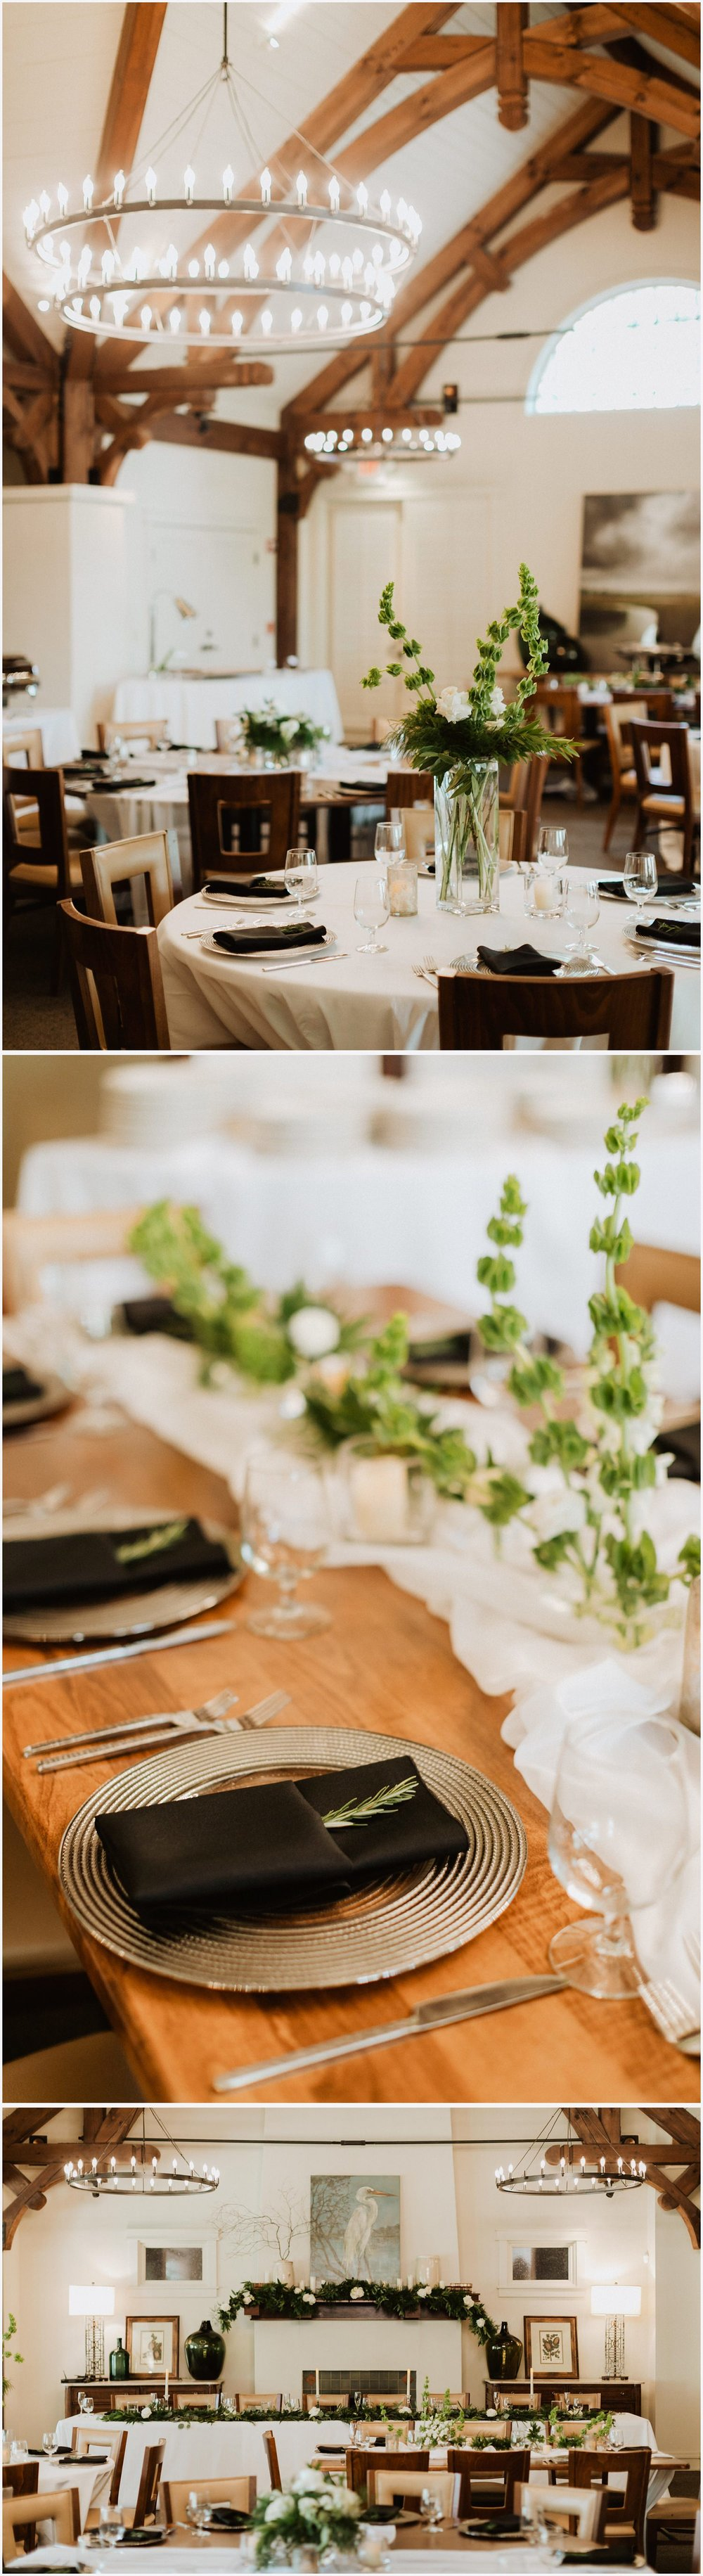 Wedding reception details at the Shark's Tooth Golf Club